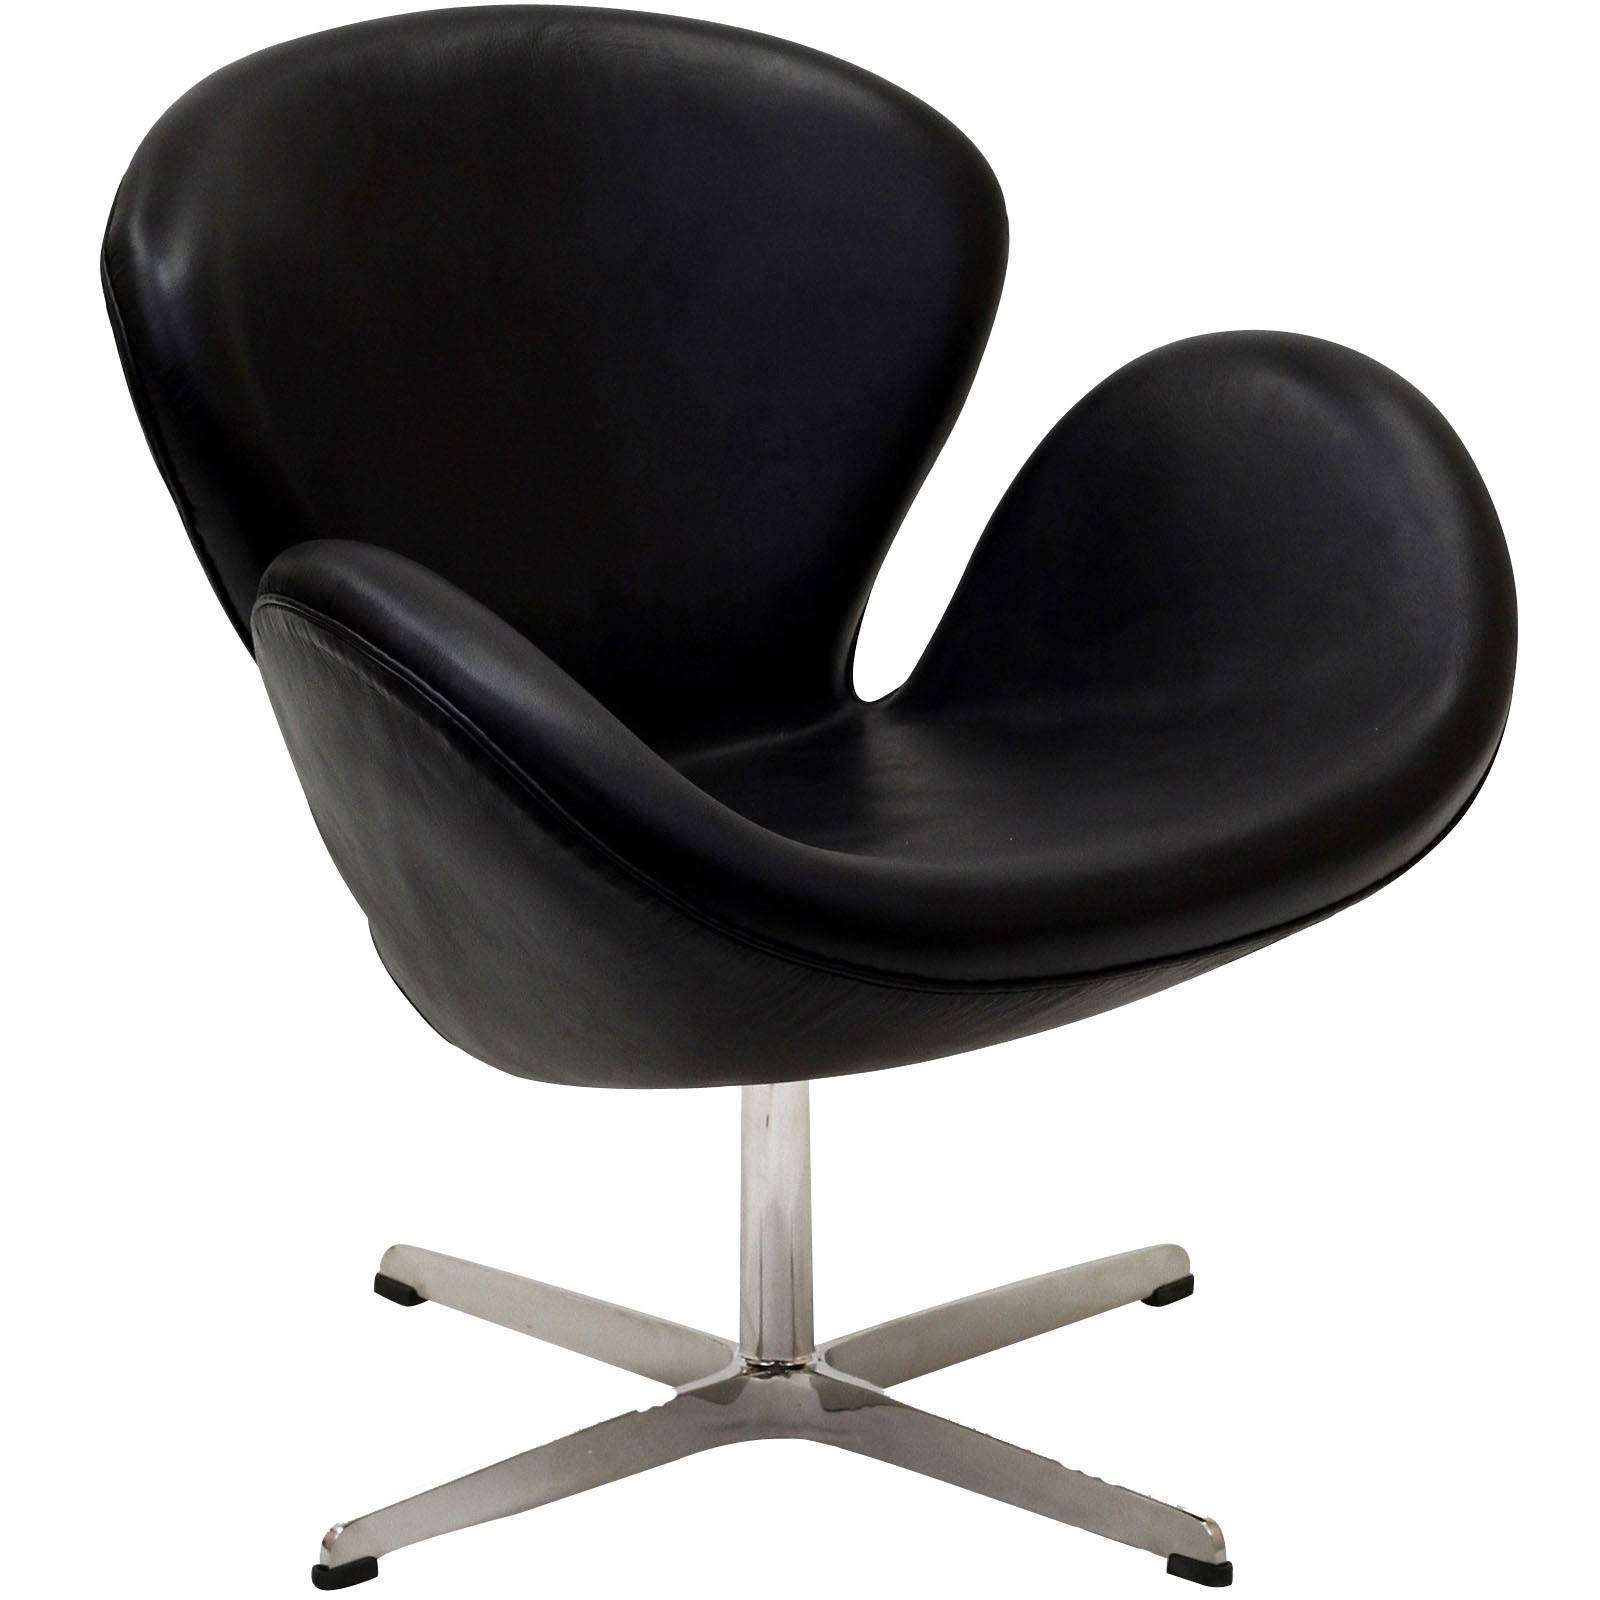 Arne jacobsen swan chair leather for Swan chair nachbau